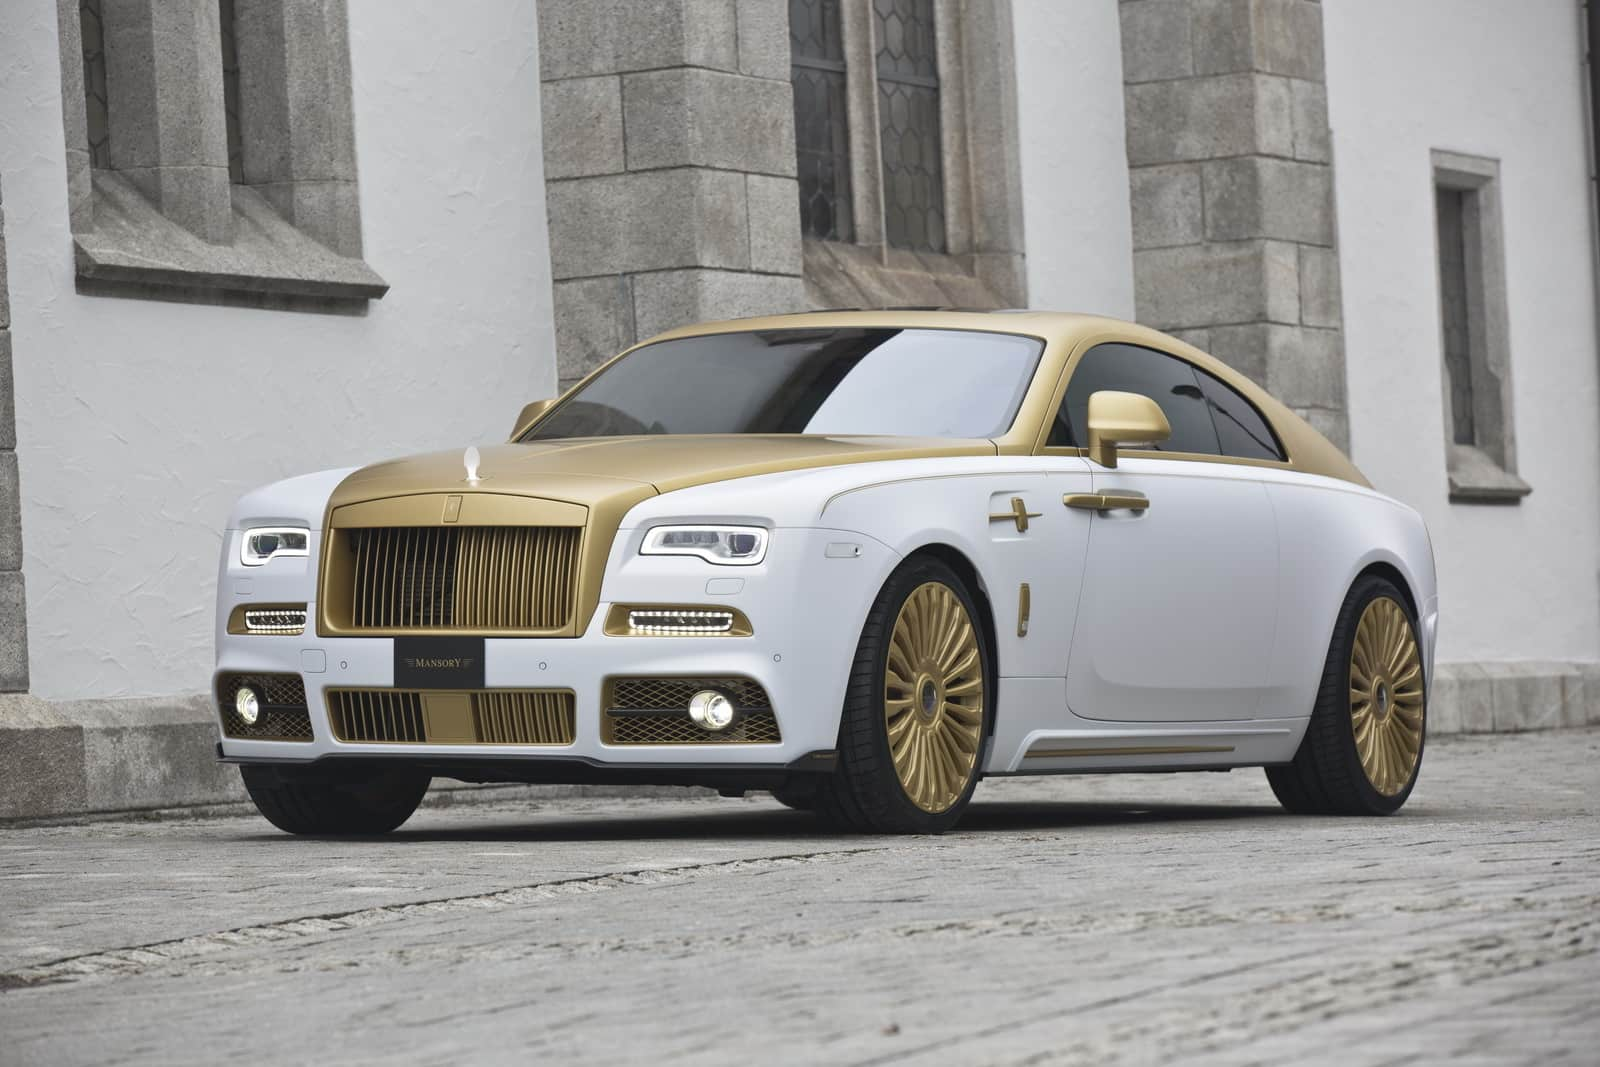 Mansory S Rolls Royce Wraith Palm Edition 999 Dazzles With Gold